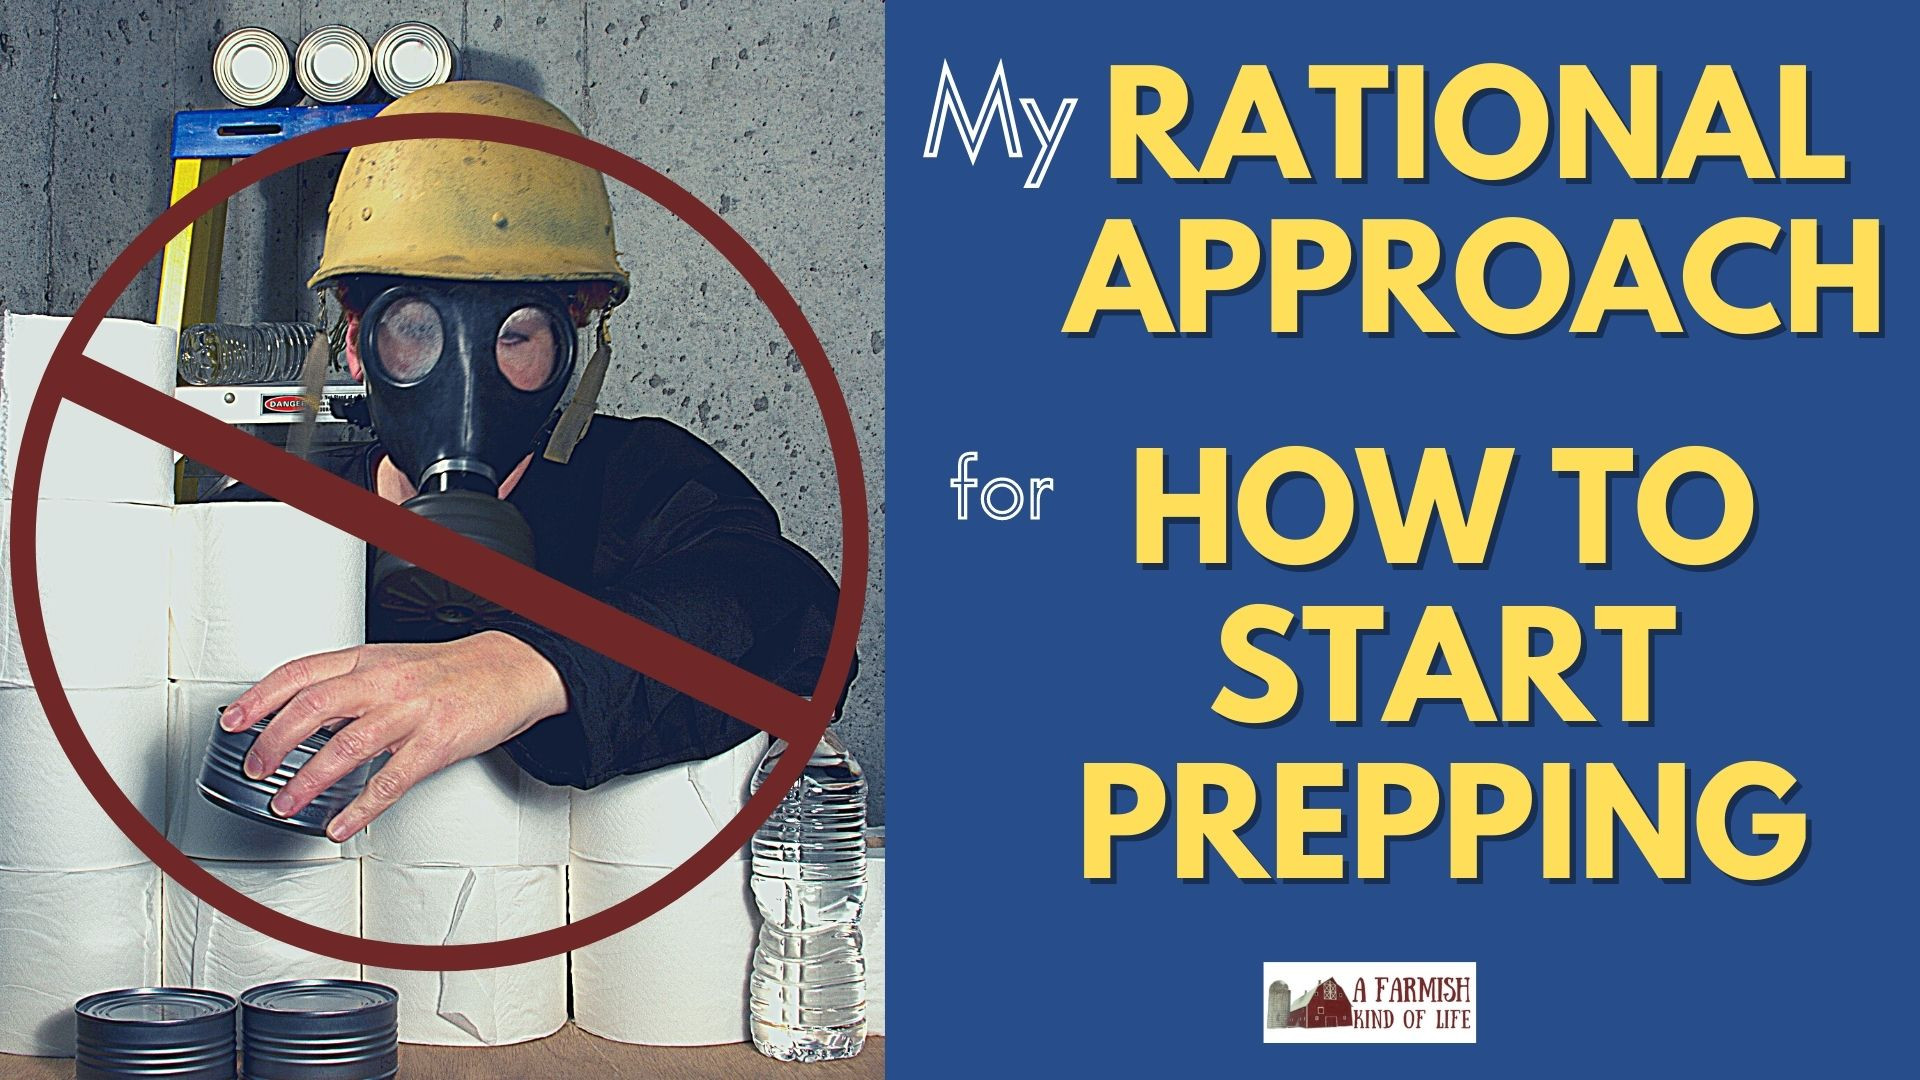 167: My (rational) approach for how to start prepping